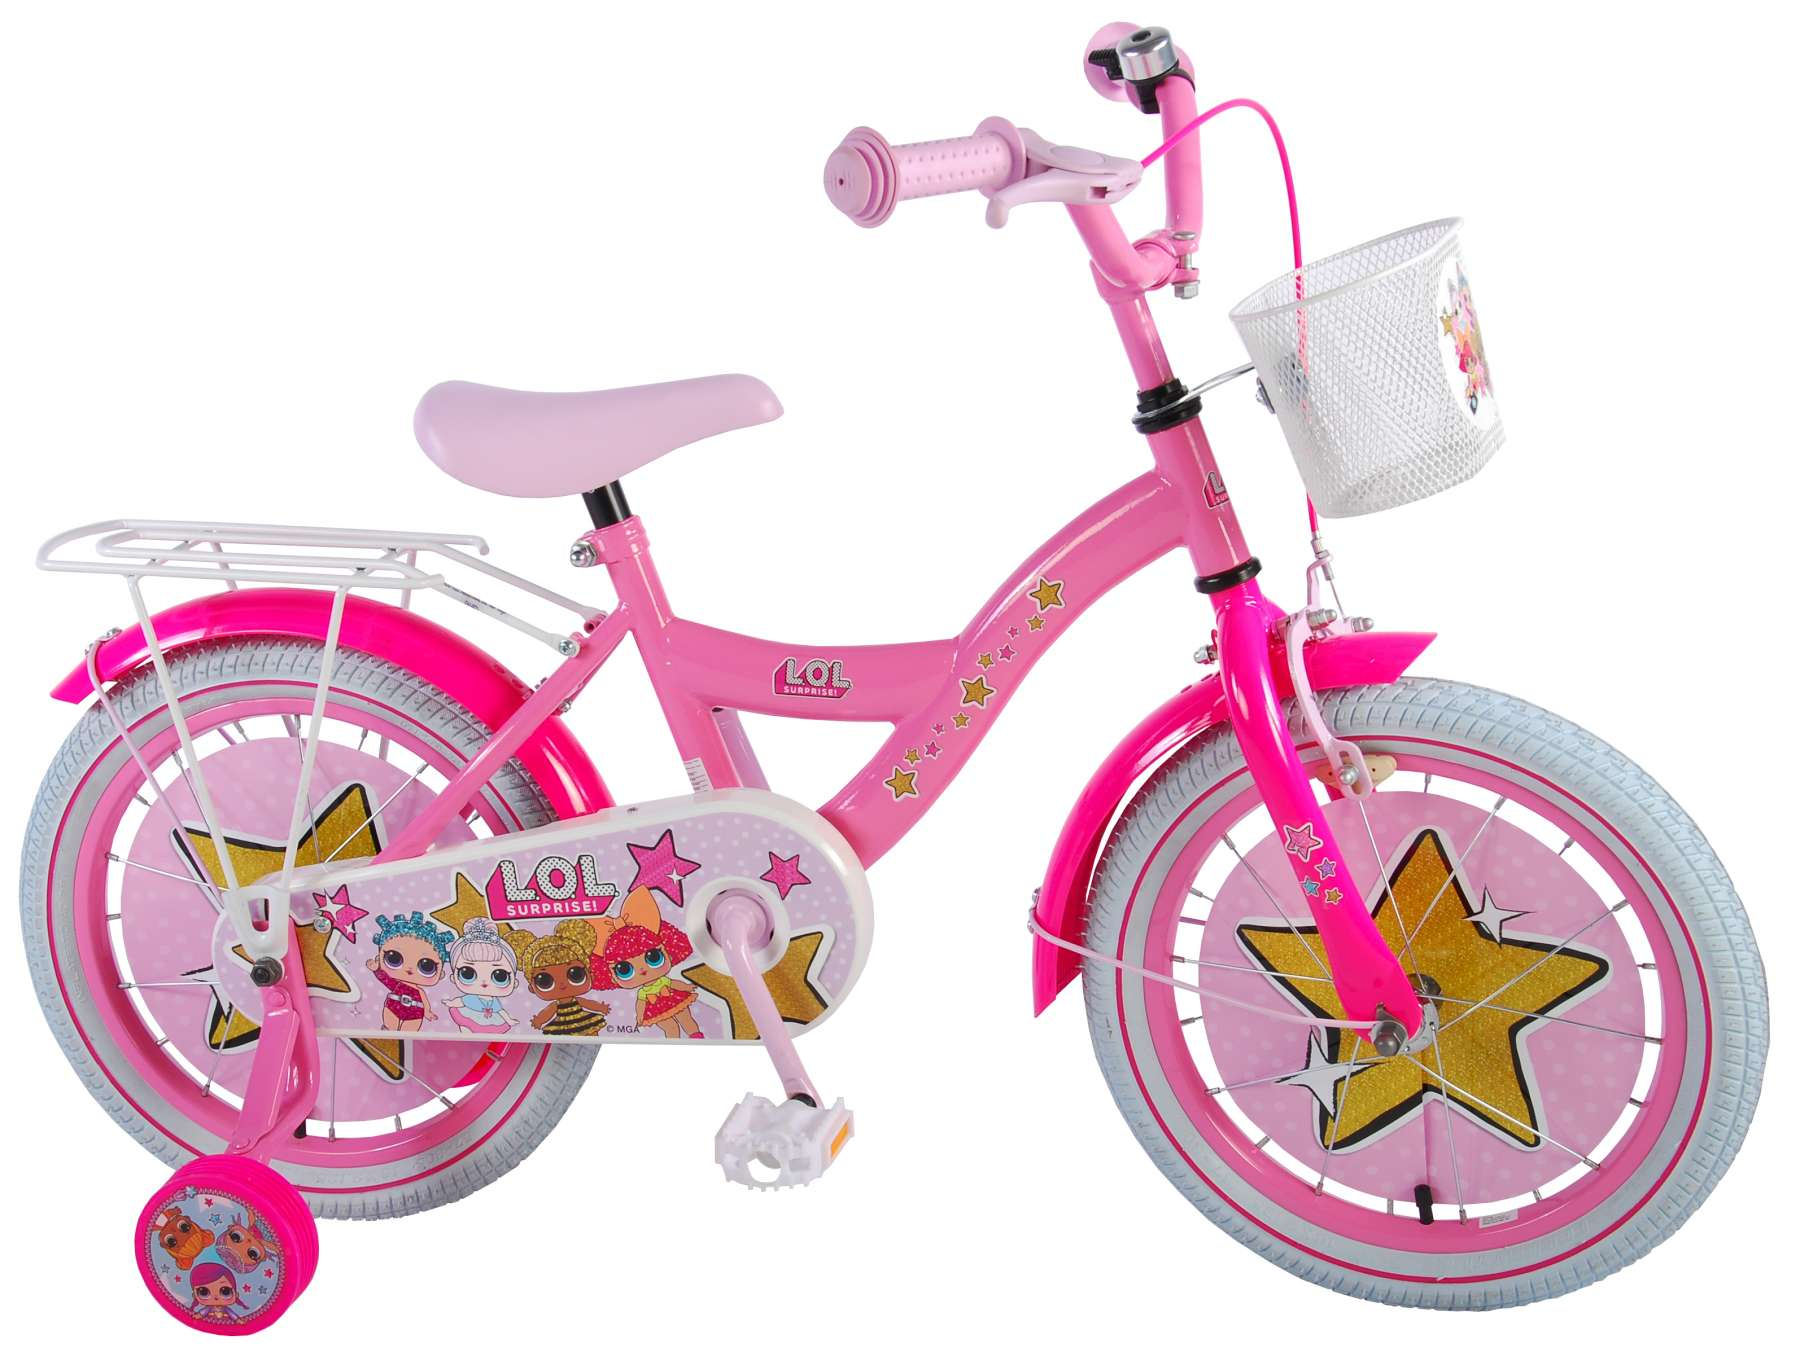 LOL Surprise 16 inch girl bike